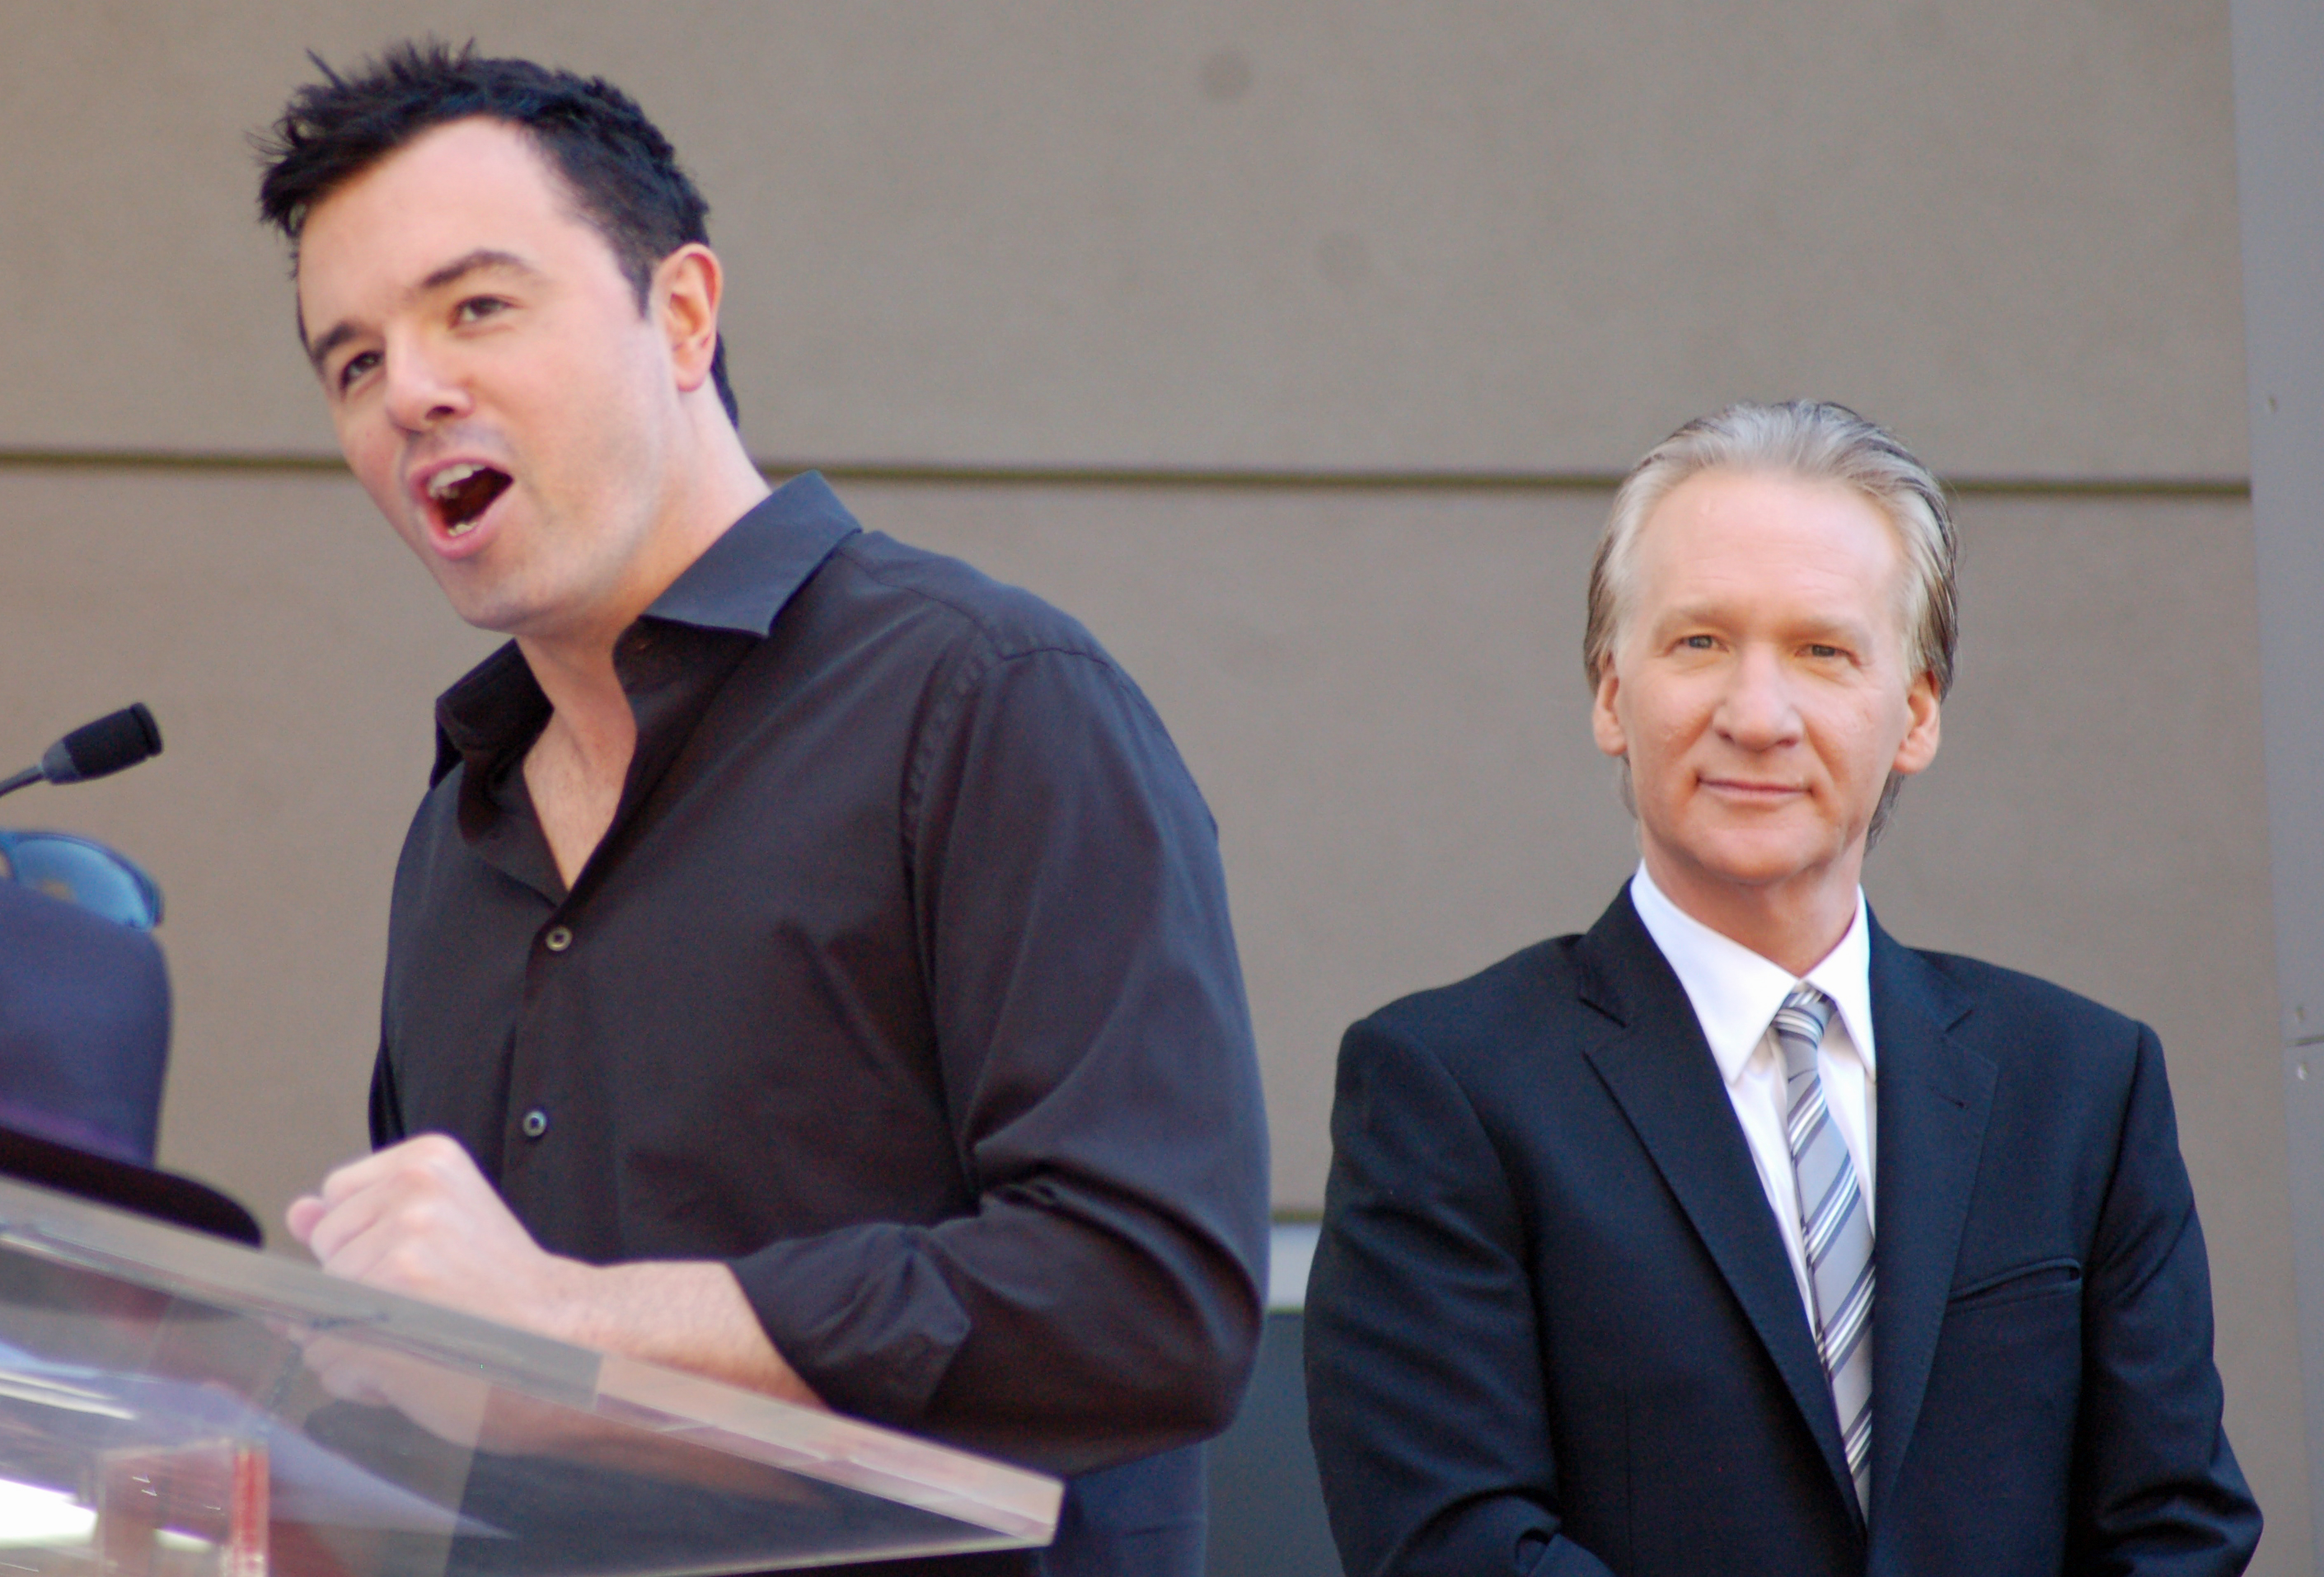 A man with black hair and slight stubble, wearing a black button-up shirt, speaking into a microphone. A man with gray hair, looking straight forward, and wearing suit, sits behind him.